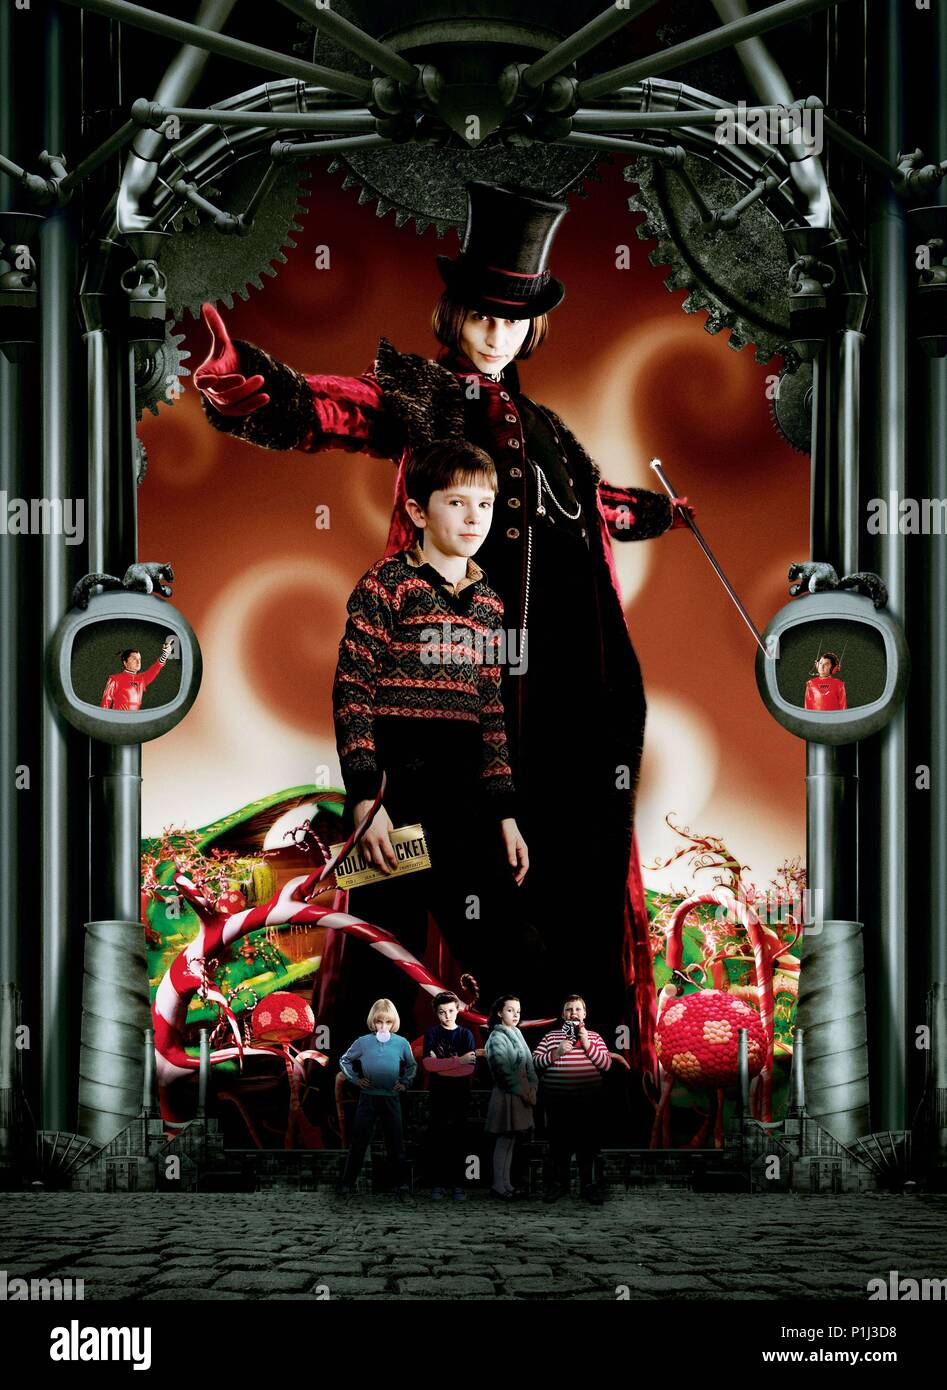 Home Décor CHARLIE ET LA CHOCOLATERIE JOHNNY DEPP TIM BURTON Poster Affiche  Home & Garden ideahome.gr